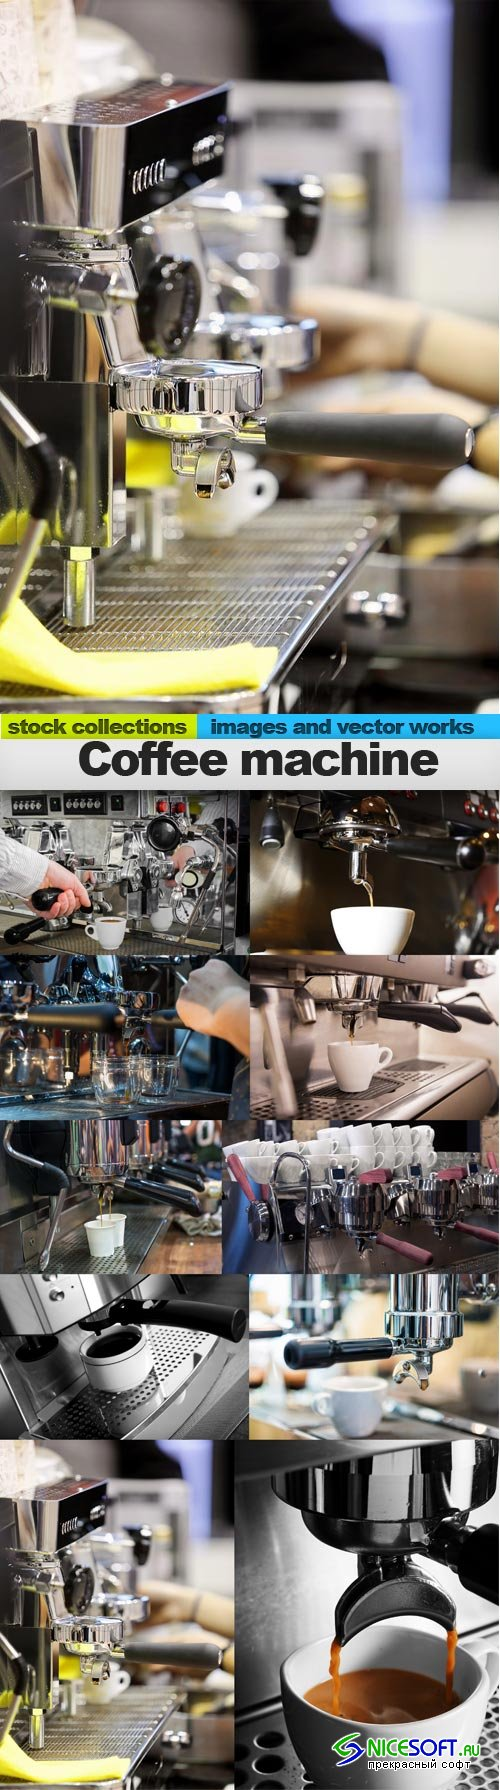 Coffee machine, 10 x UHQ JPEG